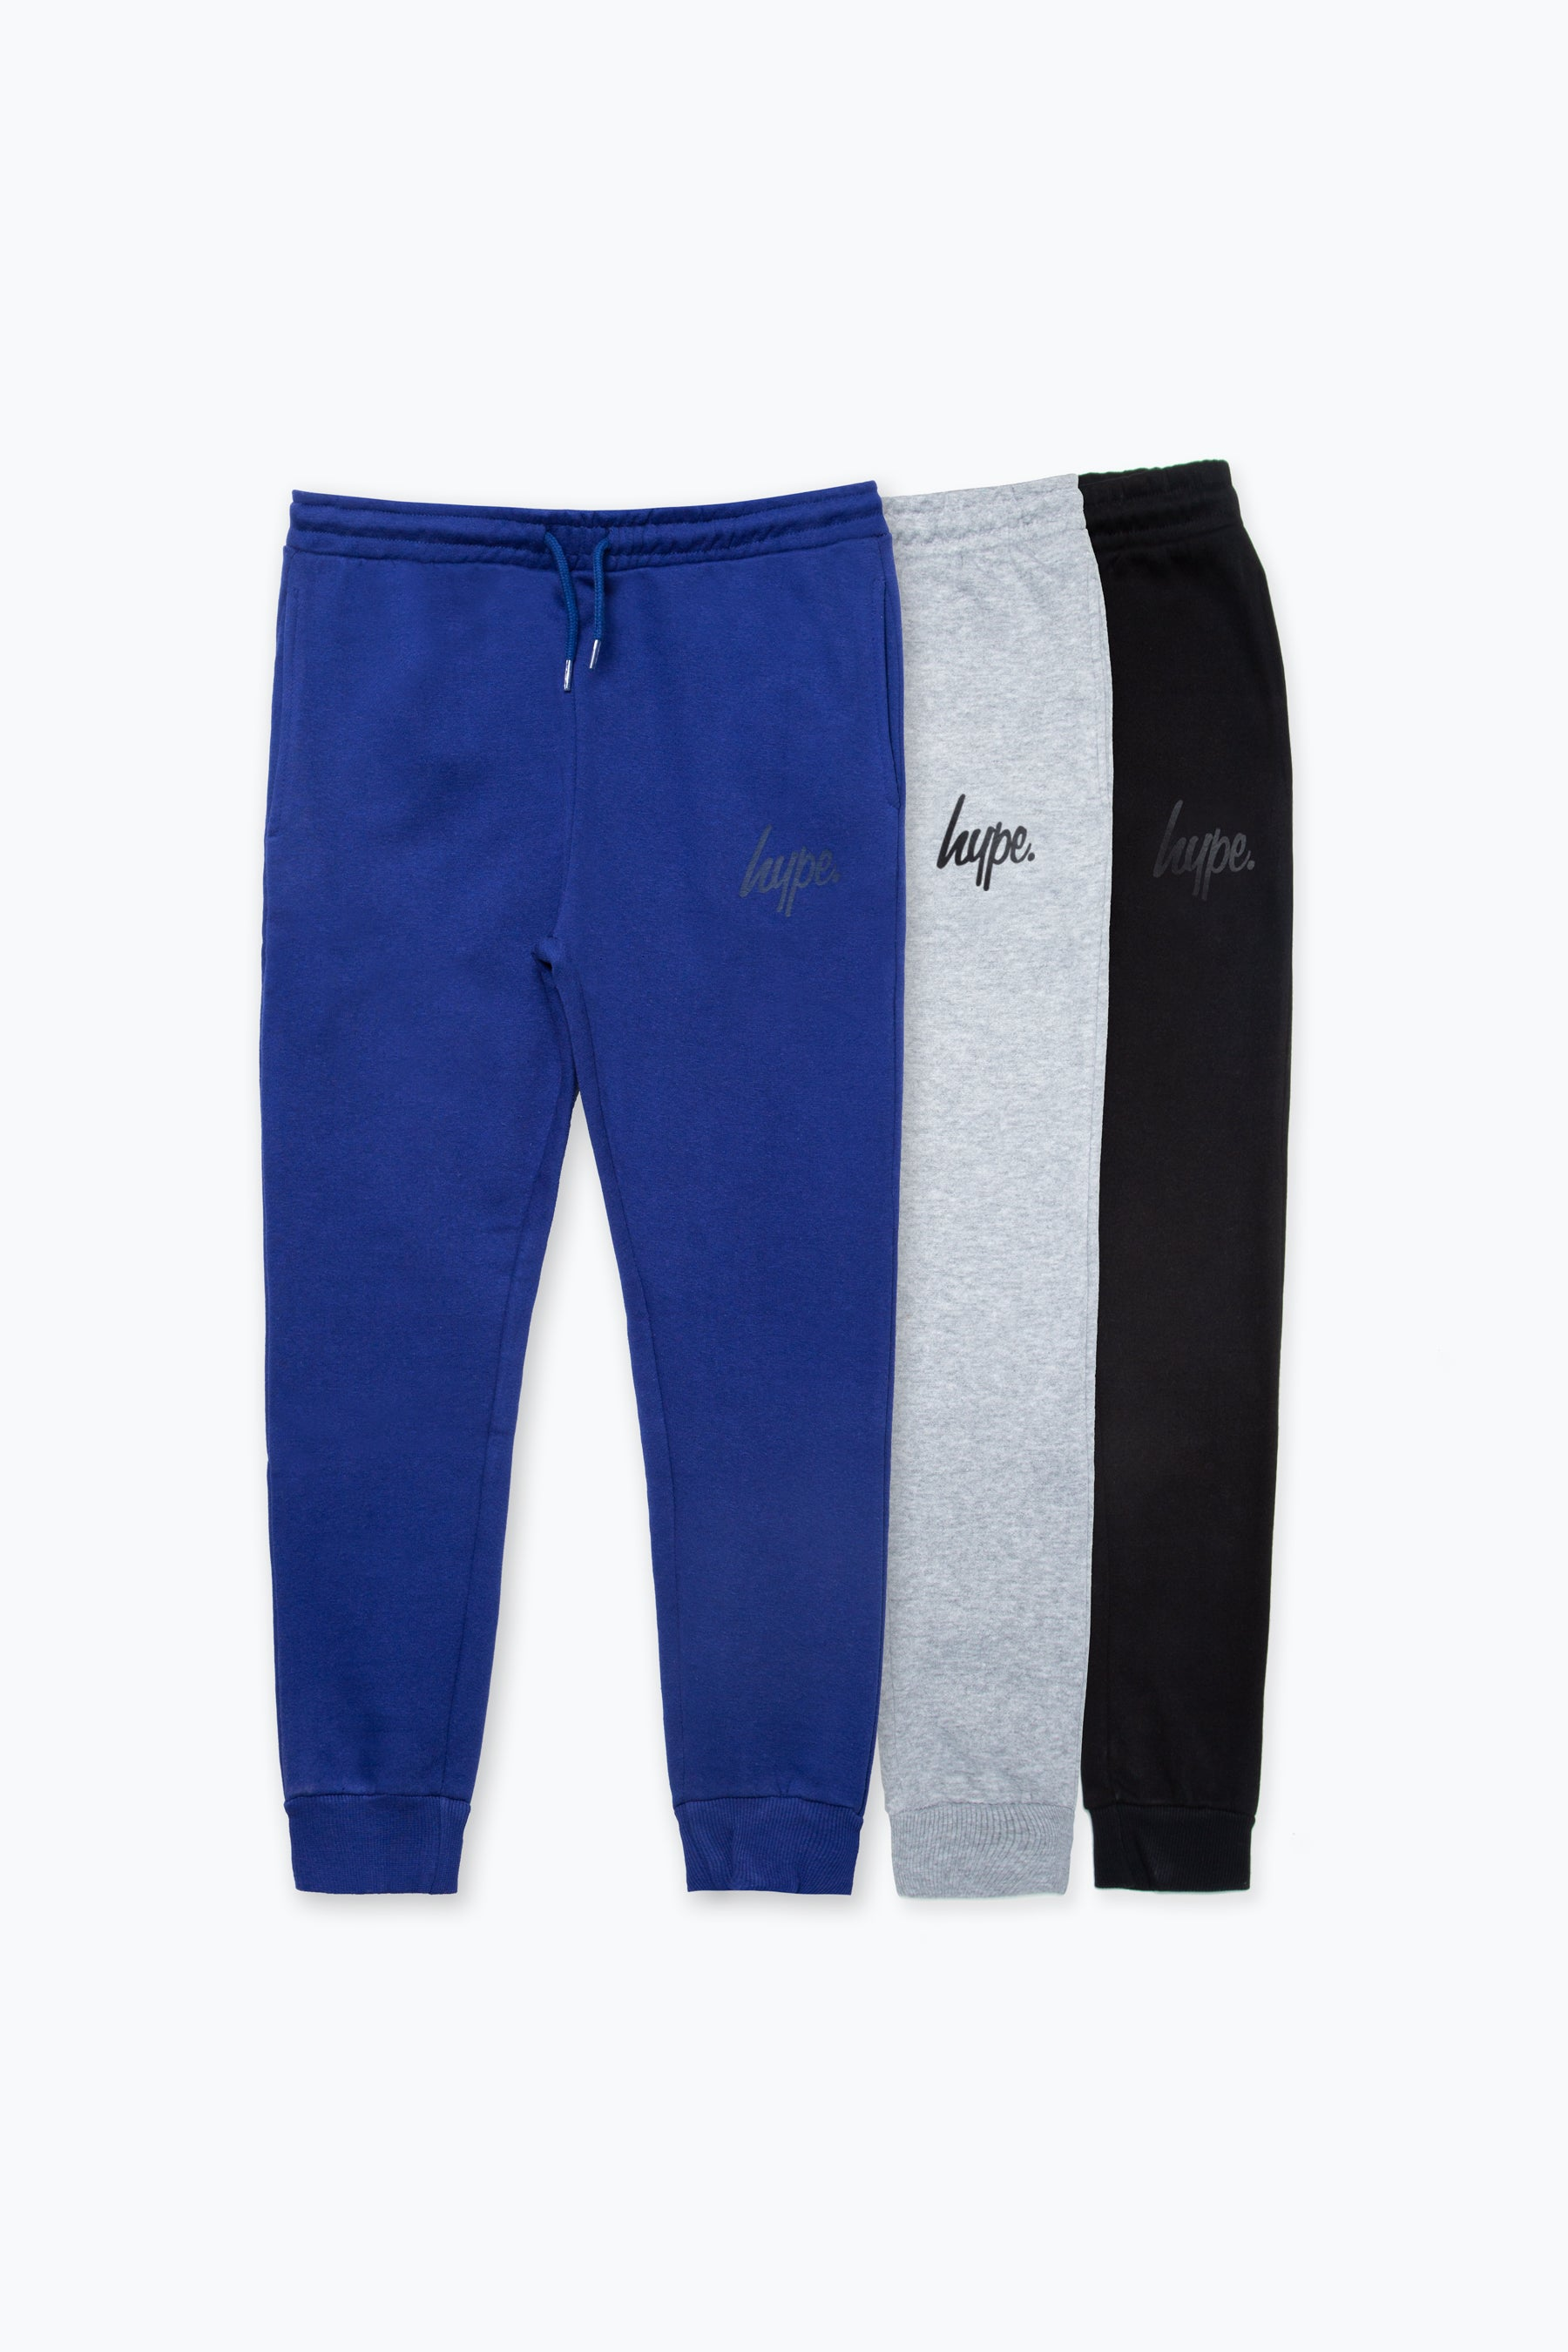 Hype Three Pack Multi Kids Black/grey/navy Joggers | Size 15Y